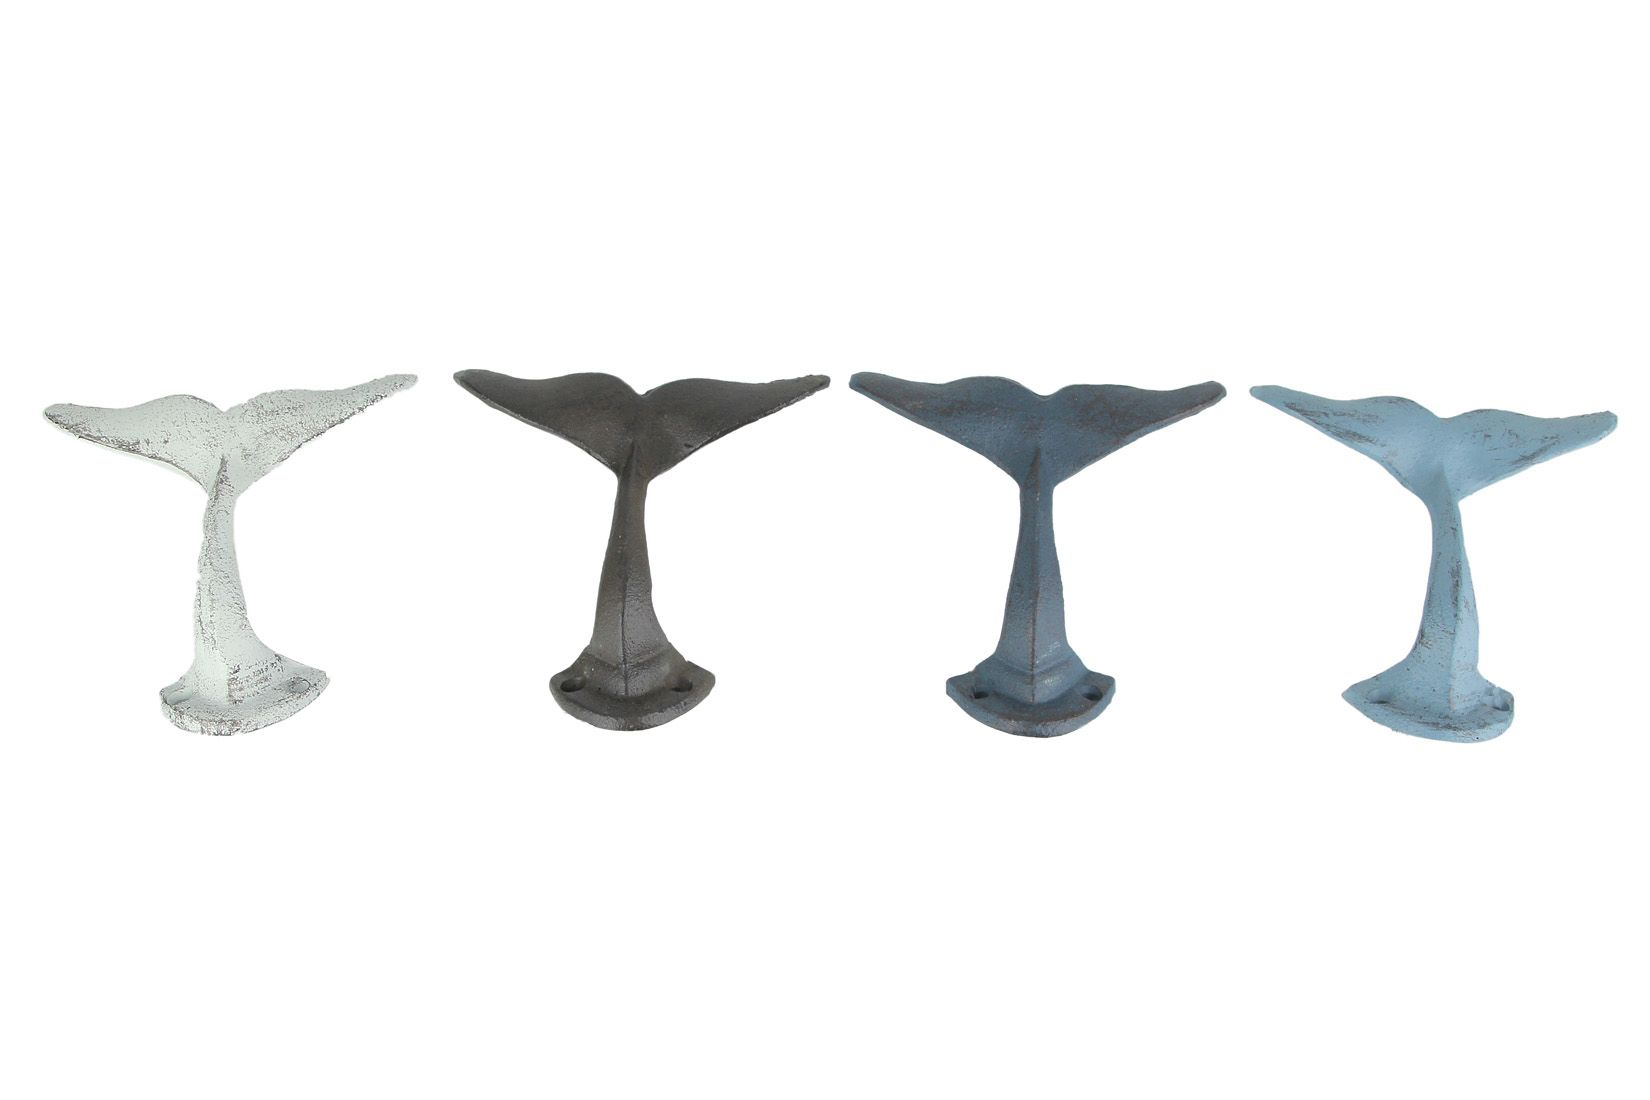 Colorful Cast Iron Whale Tail Wall Hooks Set Of 4 Walmart Com In 2021 Metal Coat Hangers Rustic Whale Galvanized Metal Wall